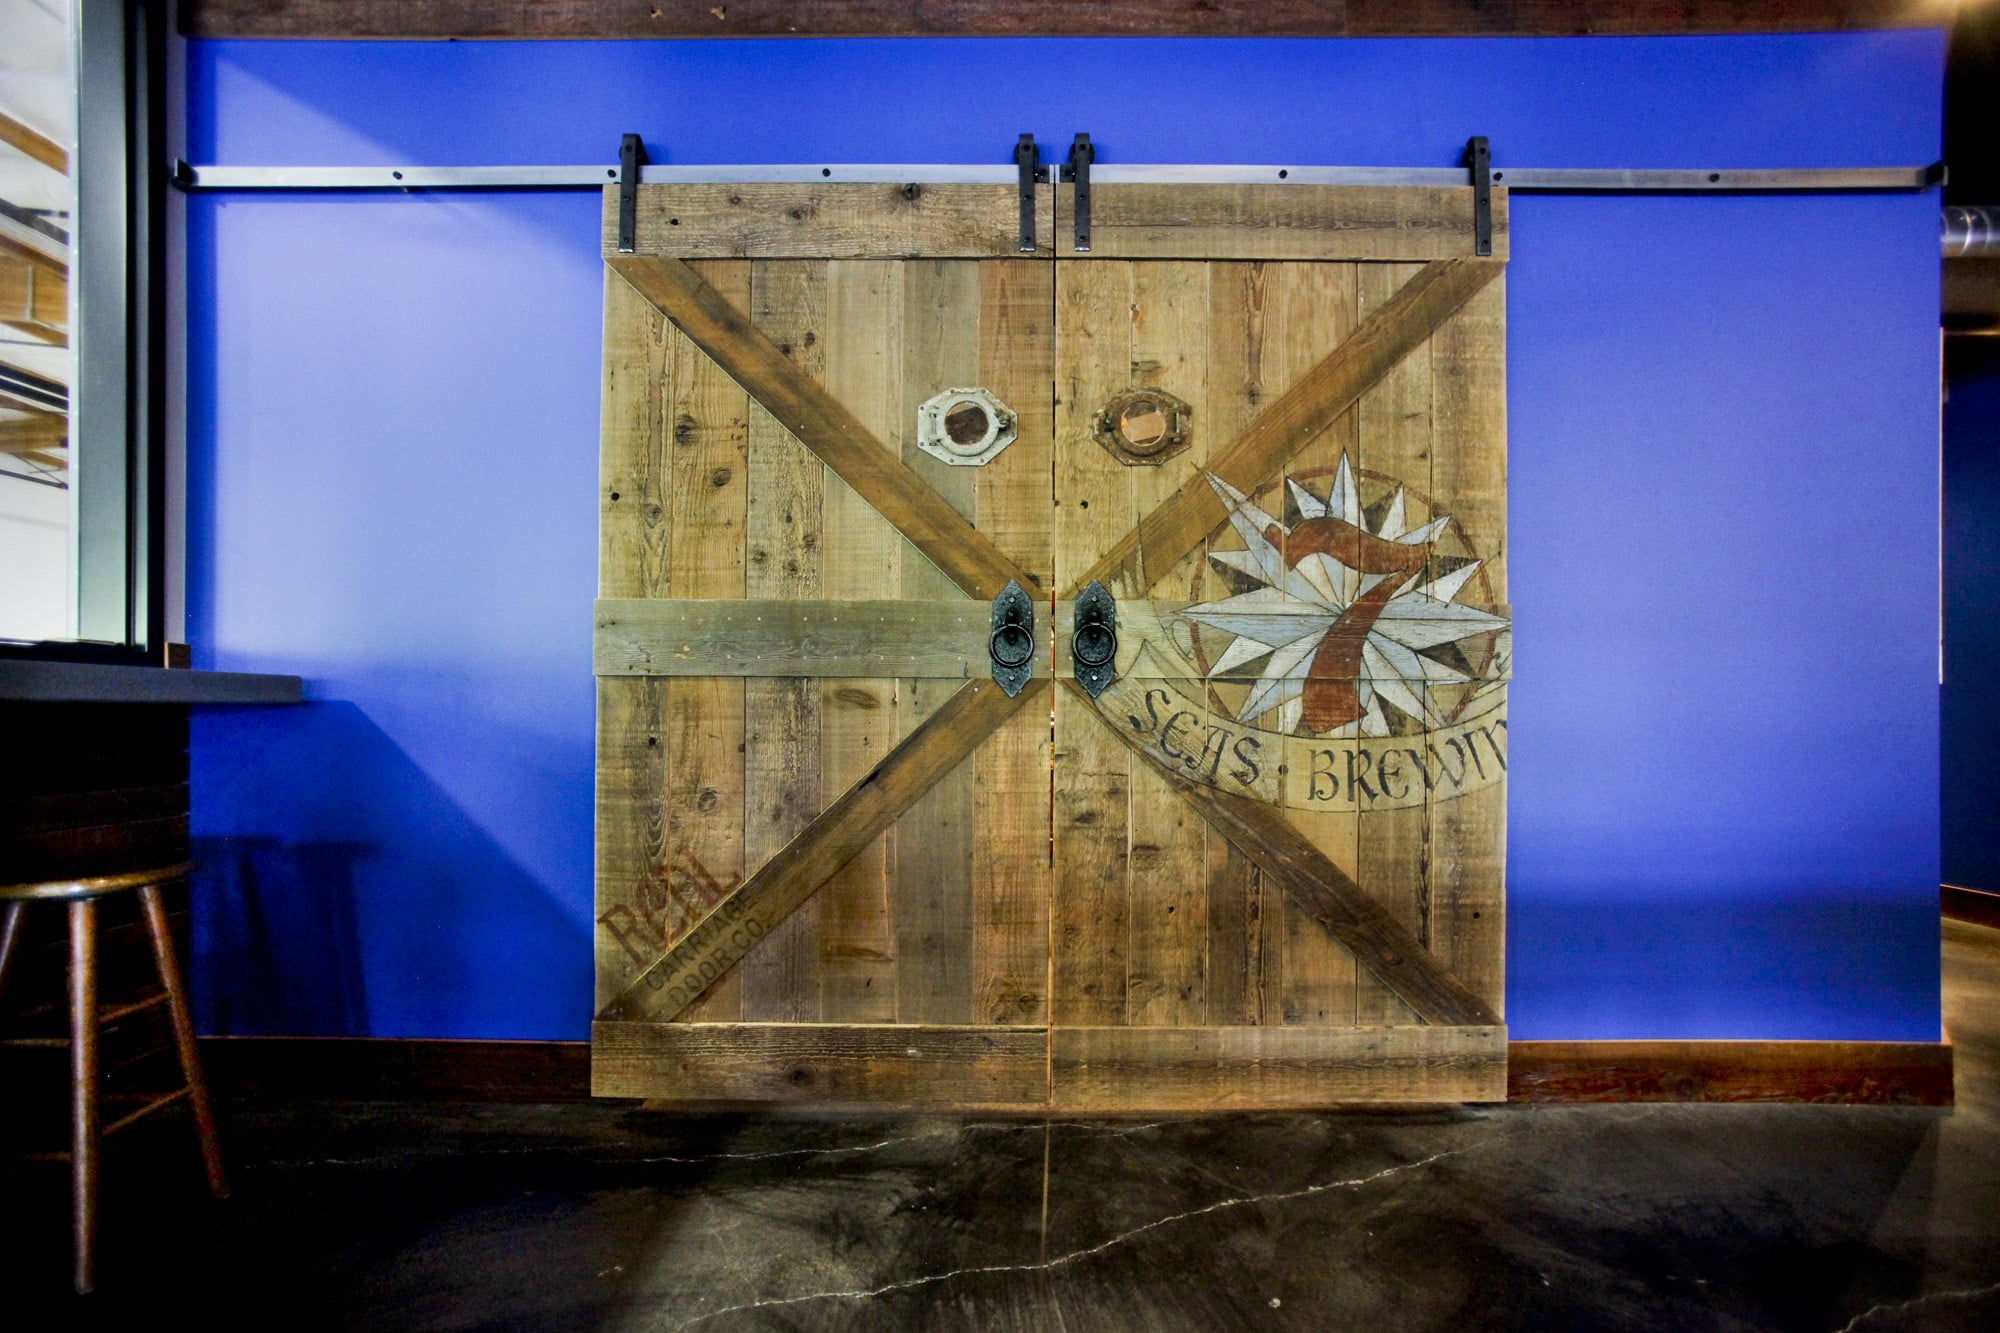 2. Sliding Barn Doors in the 7 Seas Brewing Taproom in Gig Harbor, WA